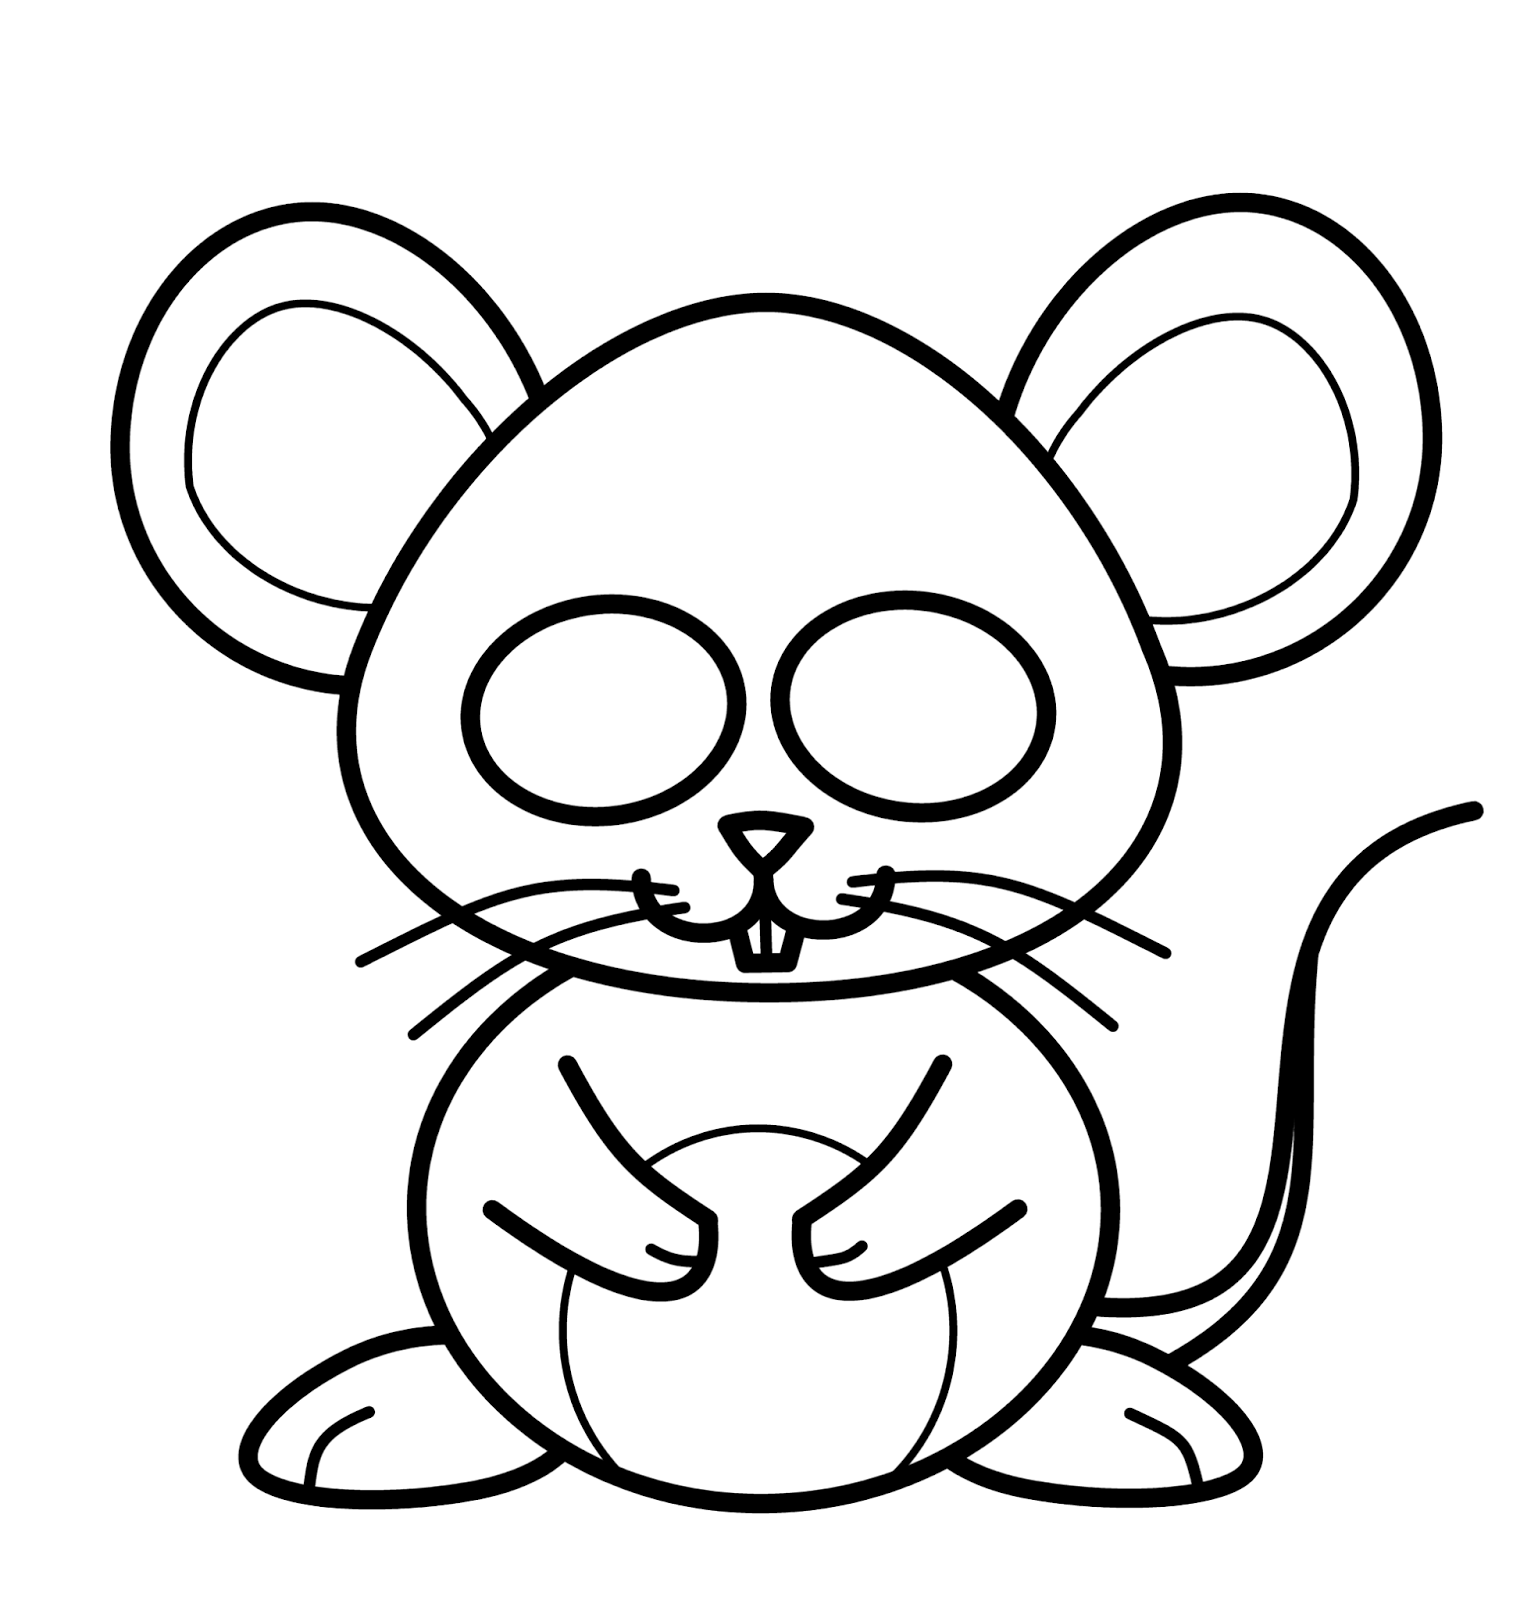 mouse drawing how to draw a mouse draw central drawing mouse